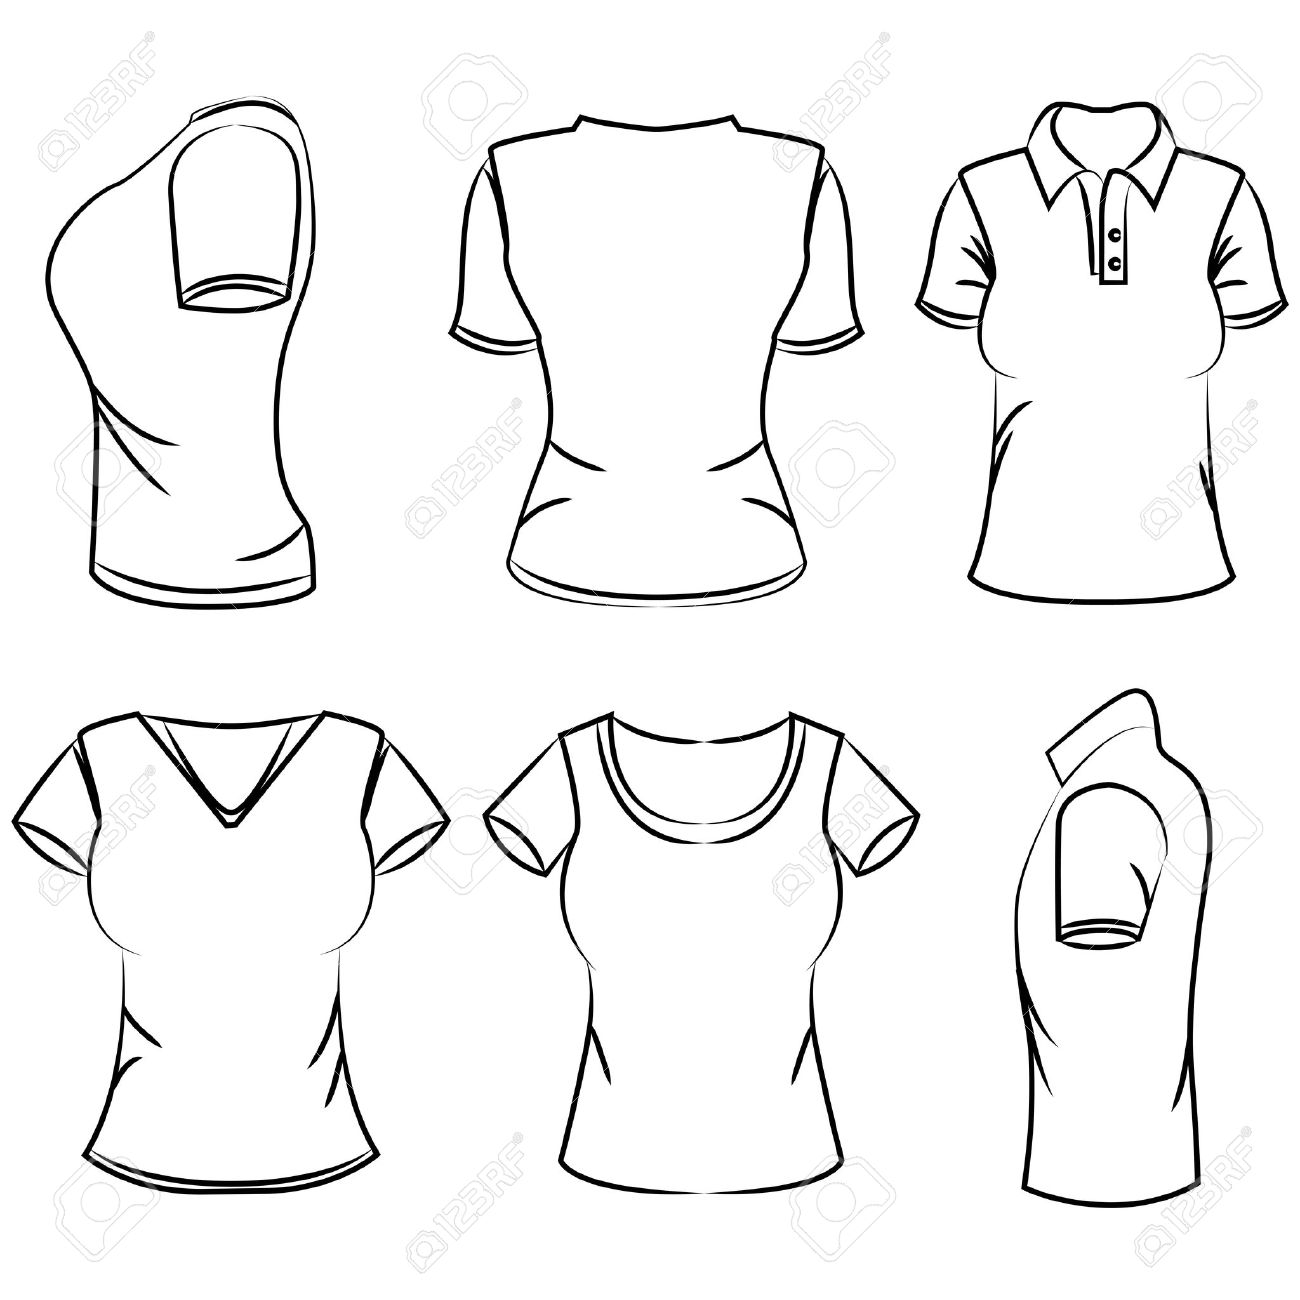 1300x1300 Sketch Women's Polo T Shirt Royalty Free Cliparts, Vectors,